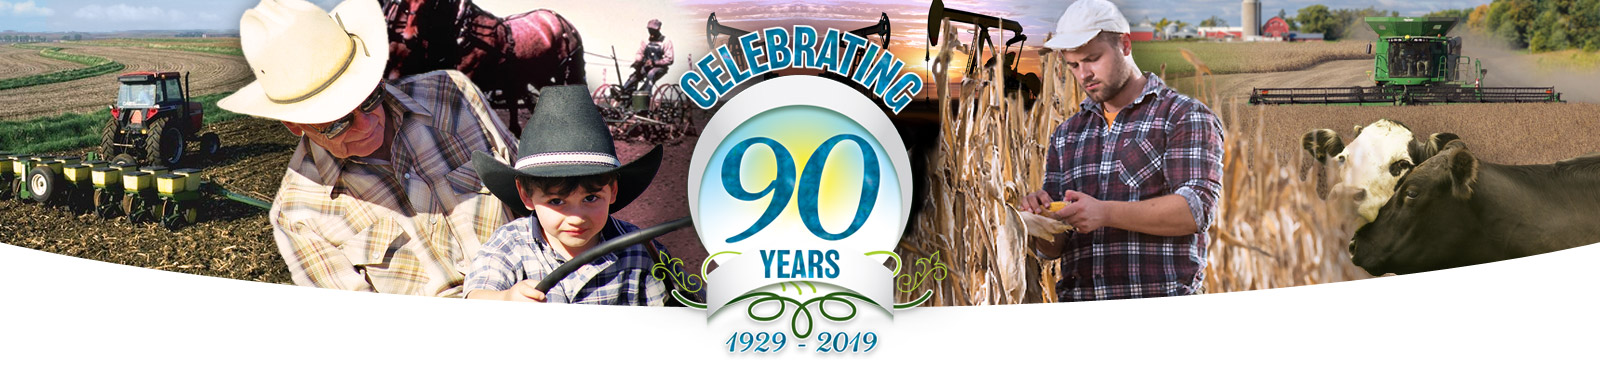 Farmers National Company - Celebrating 90 Years